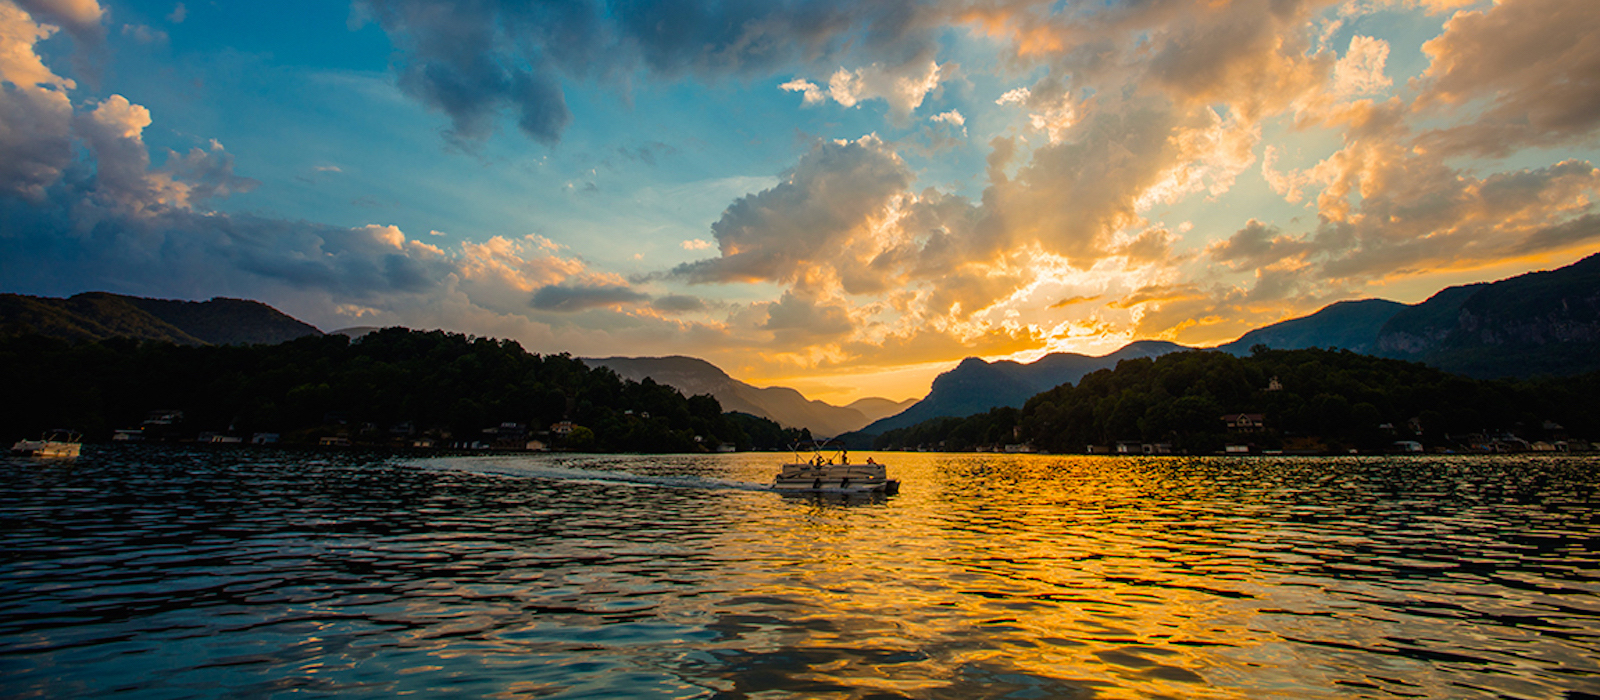 Lake Lure, NC Sunset on the Lake - Around Lake Lure